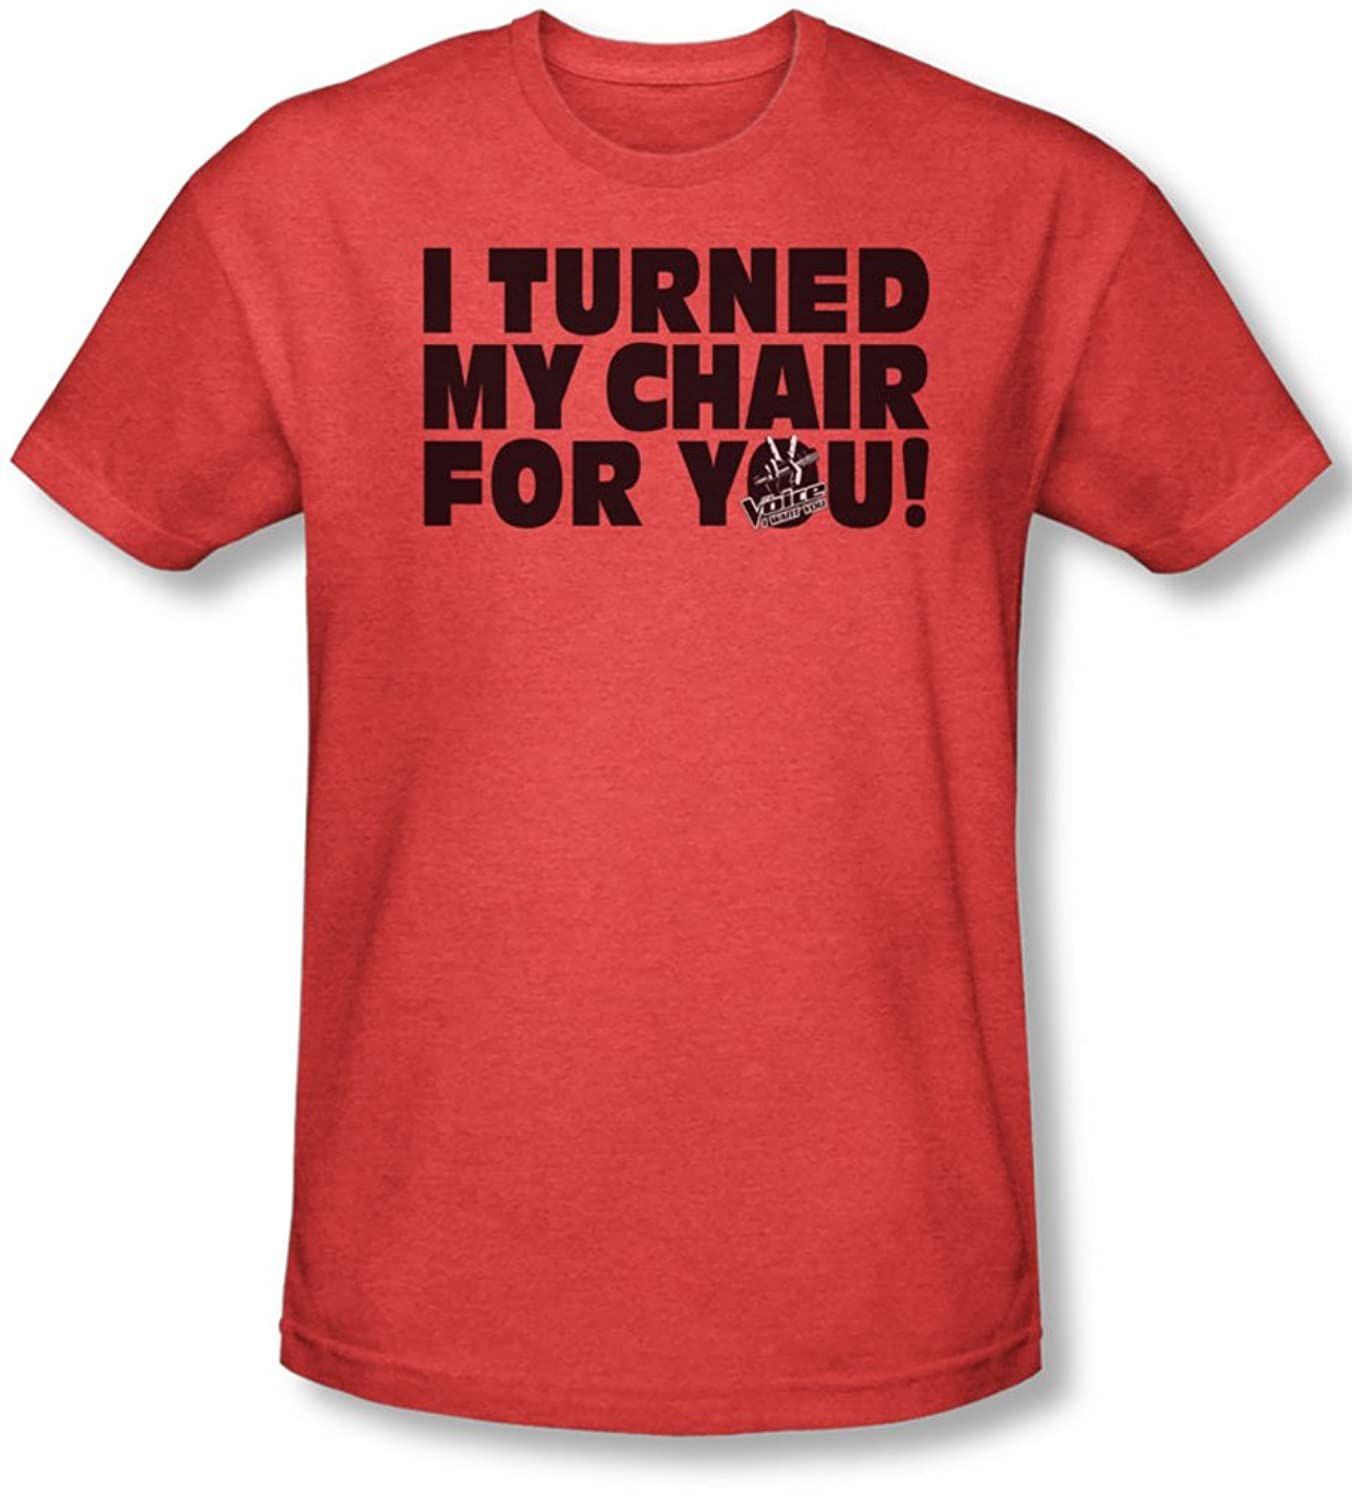 The Voice - Mens Turned My Chair T-Shirt In Red